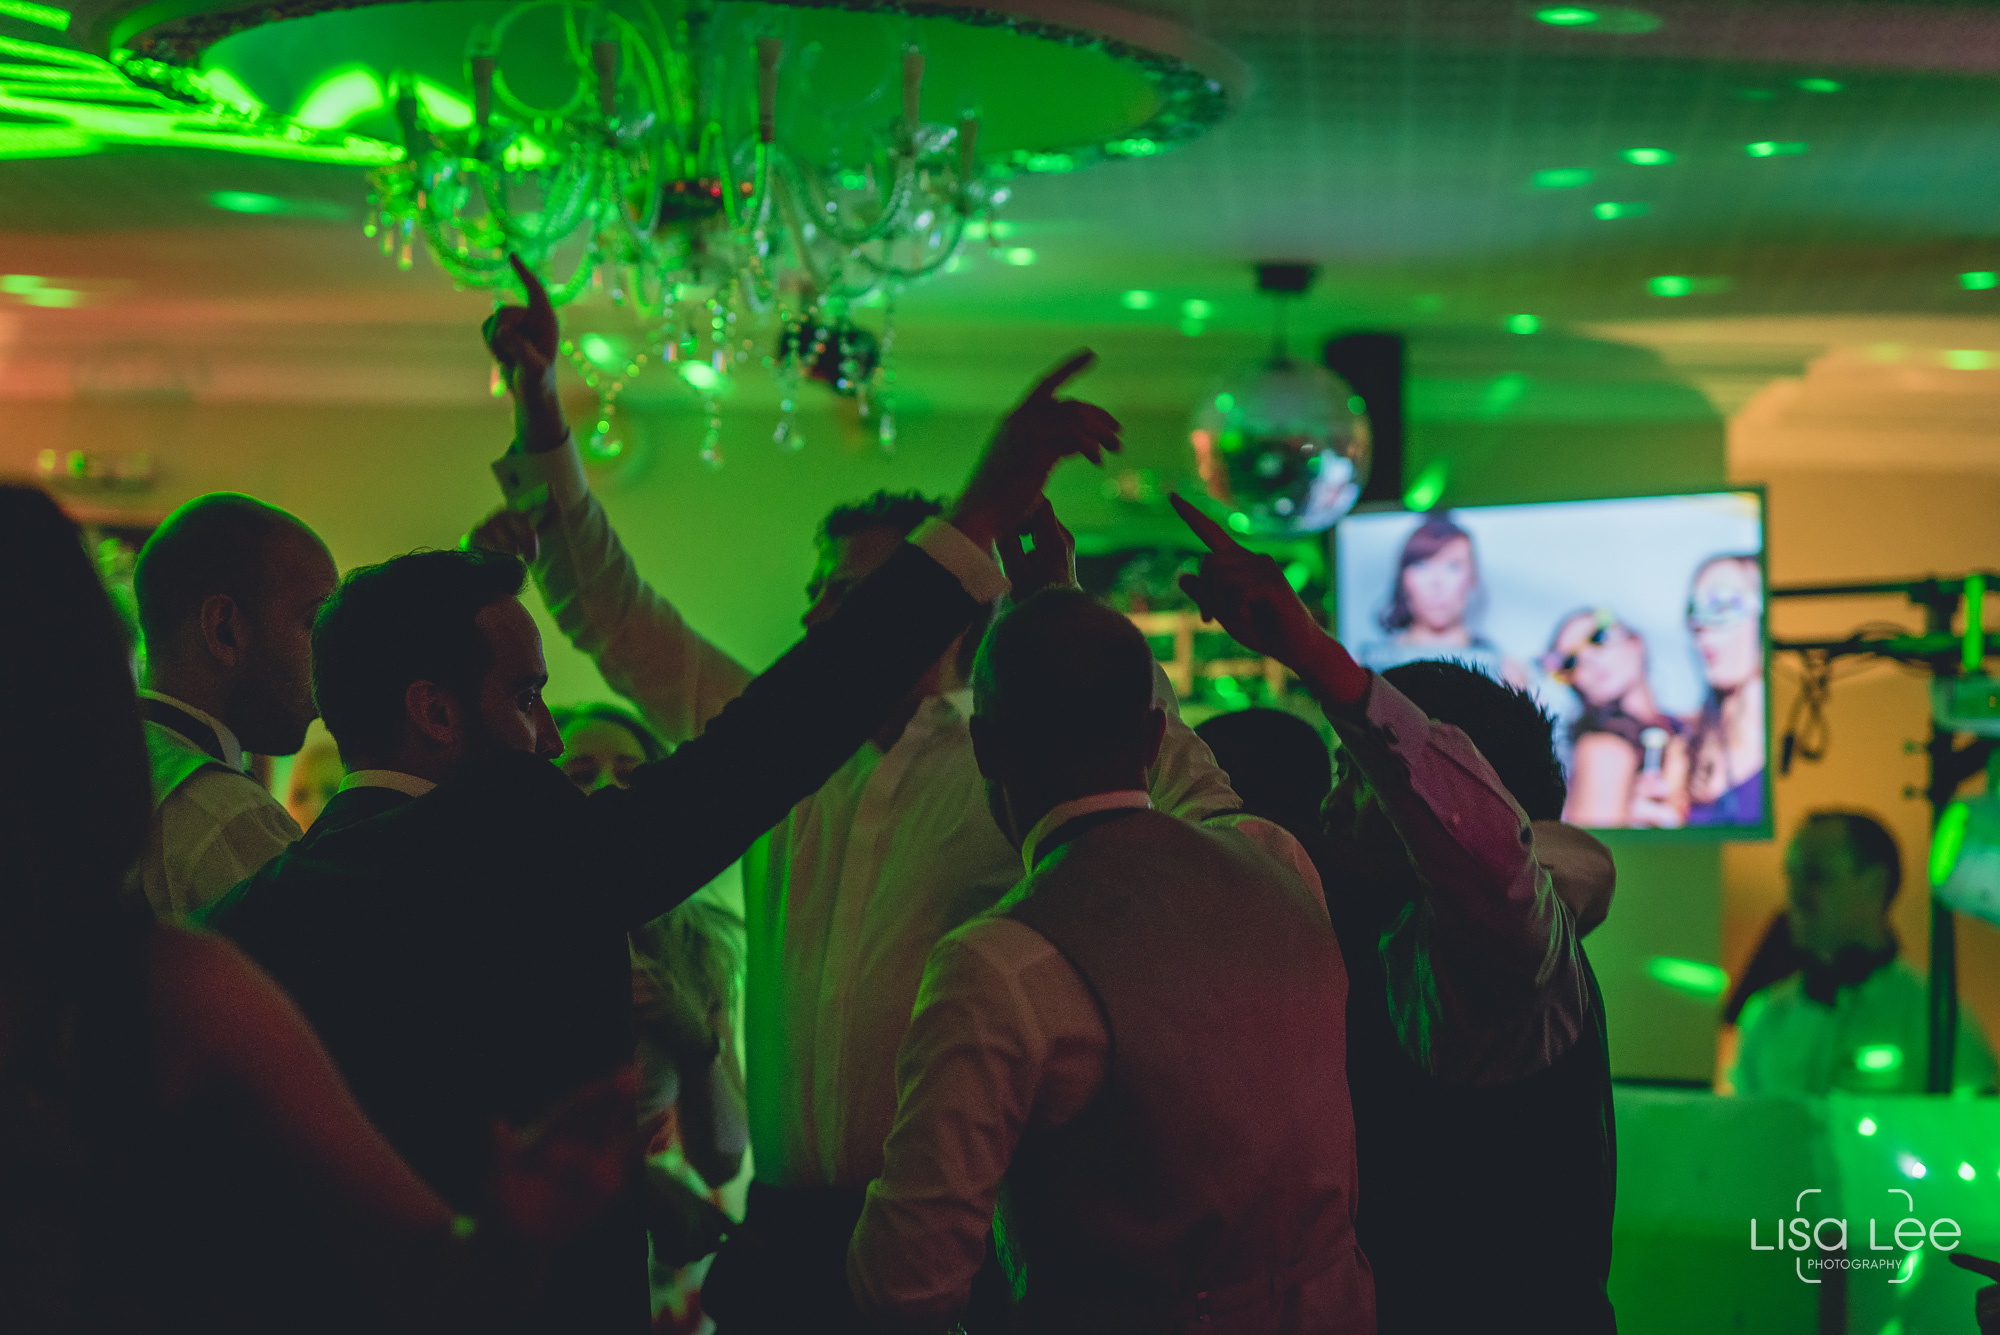 Lord-Bute-Hotel-Lisa-Lee-Documentary-Wedding-Photography-party-15.jpg